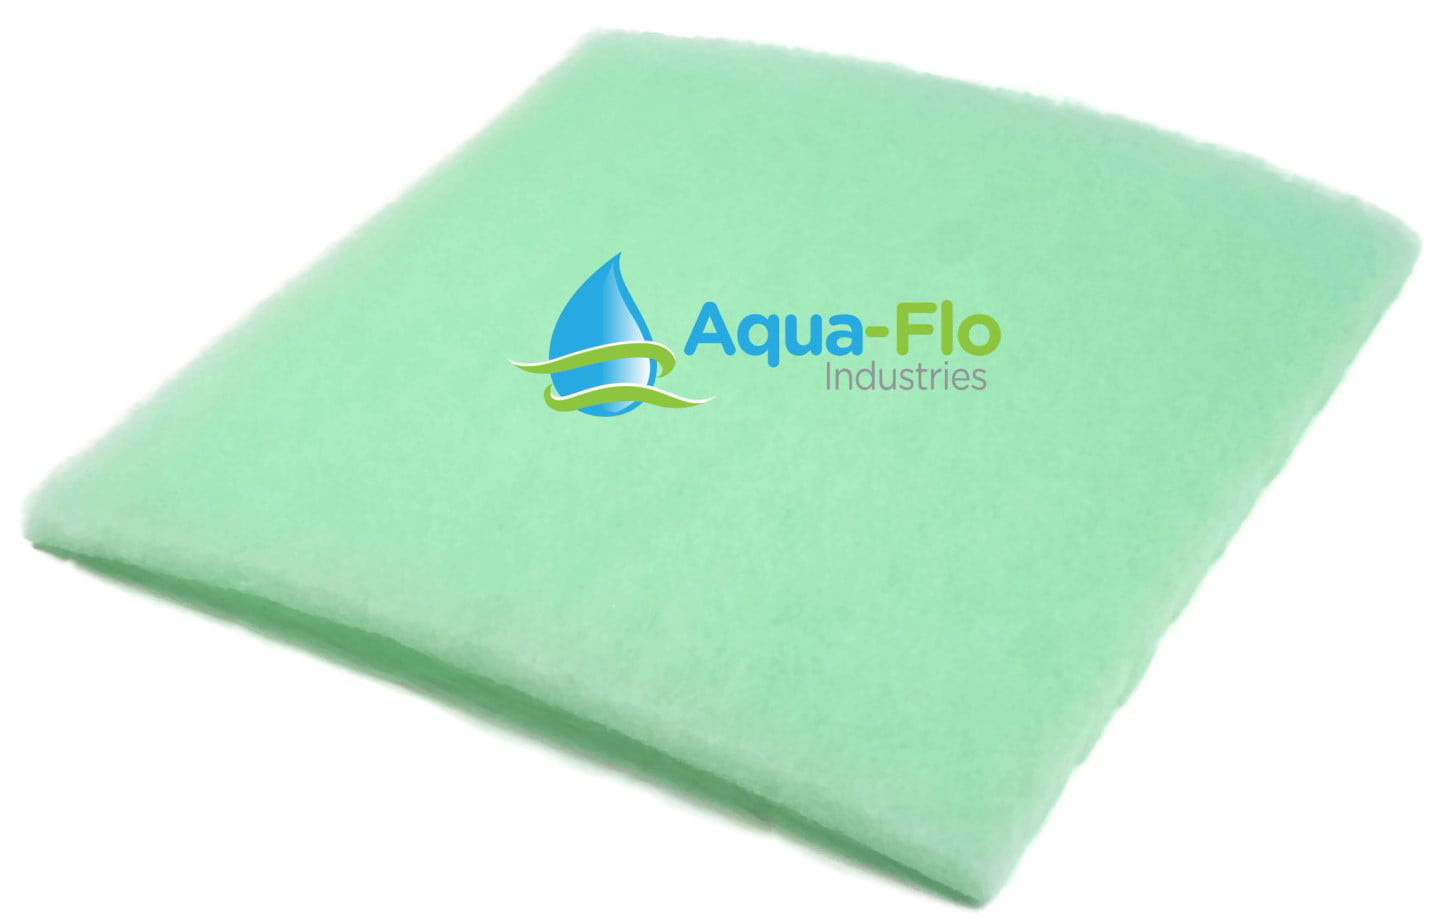 5 Pack Cut to Fit Pond and Aquarium Filter 24 x 24 x 1 Thick Filter Media Pads Lime Green